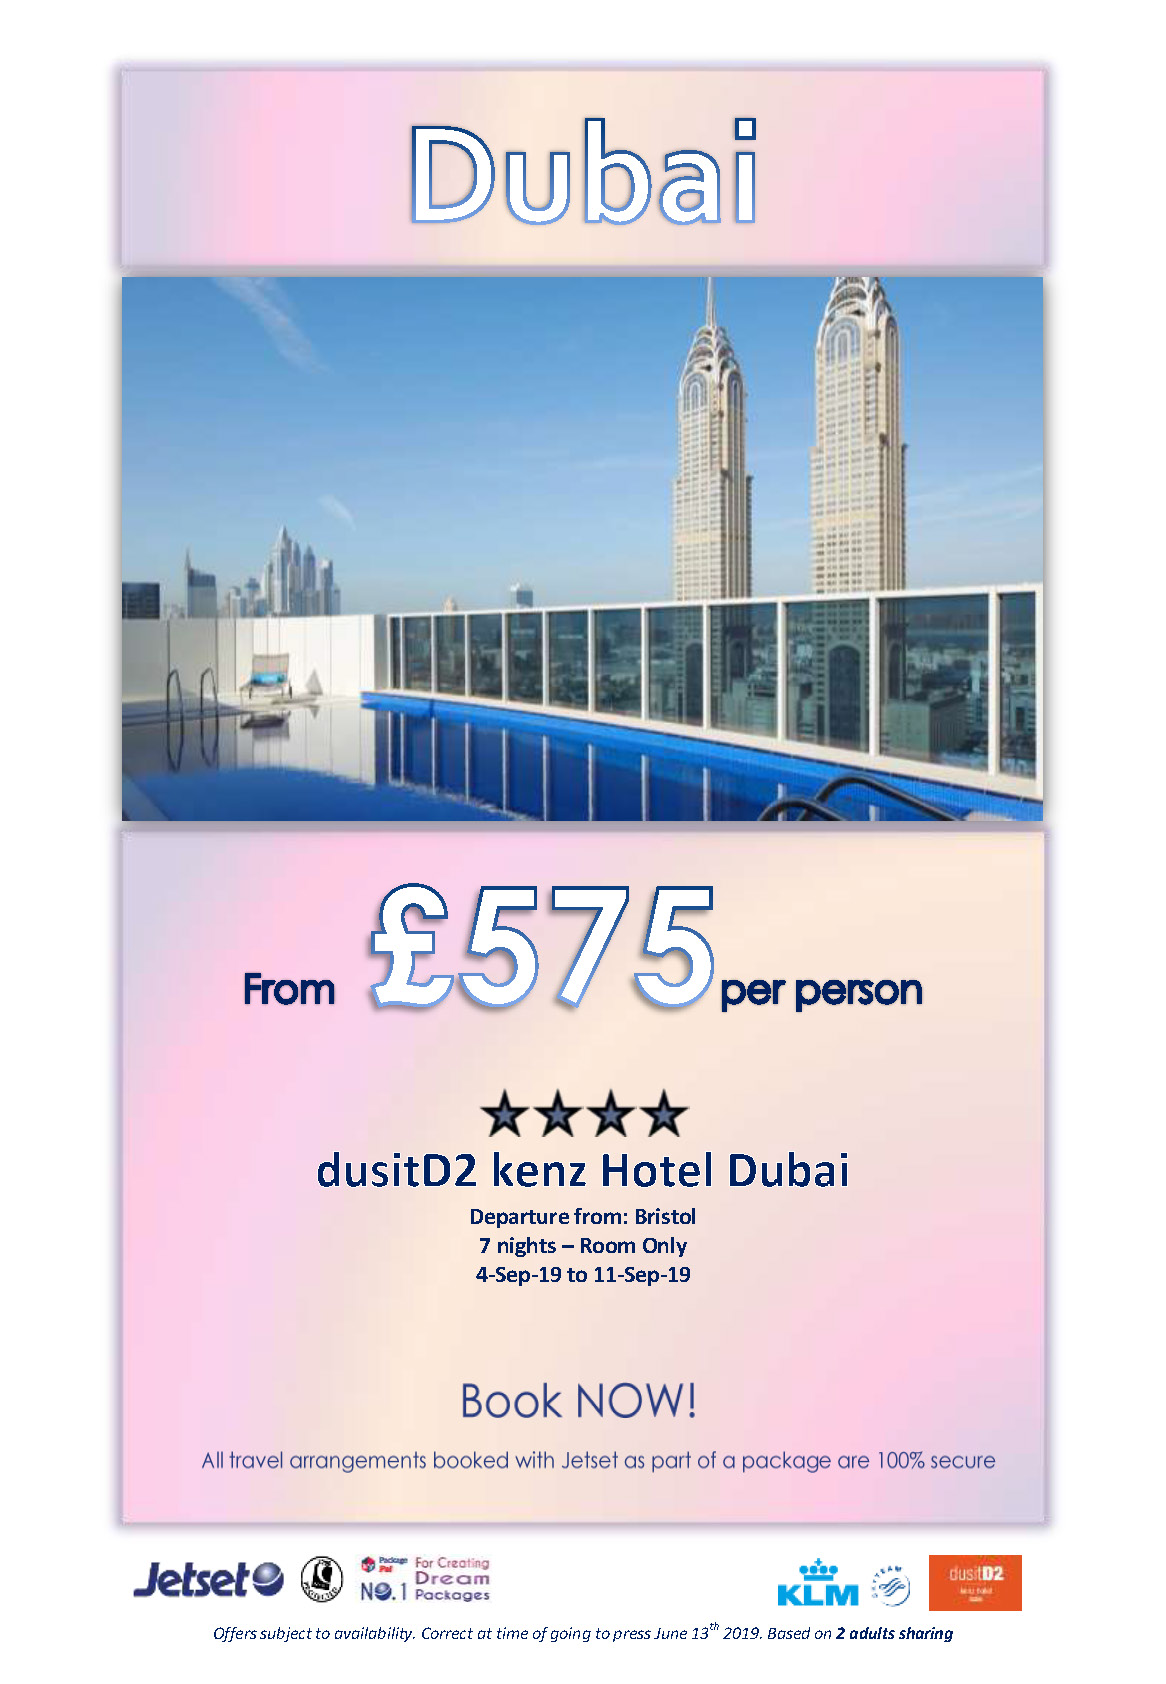 jetset PackagePal Offer BRS DXB (1).jpg